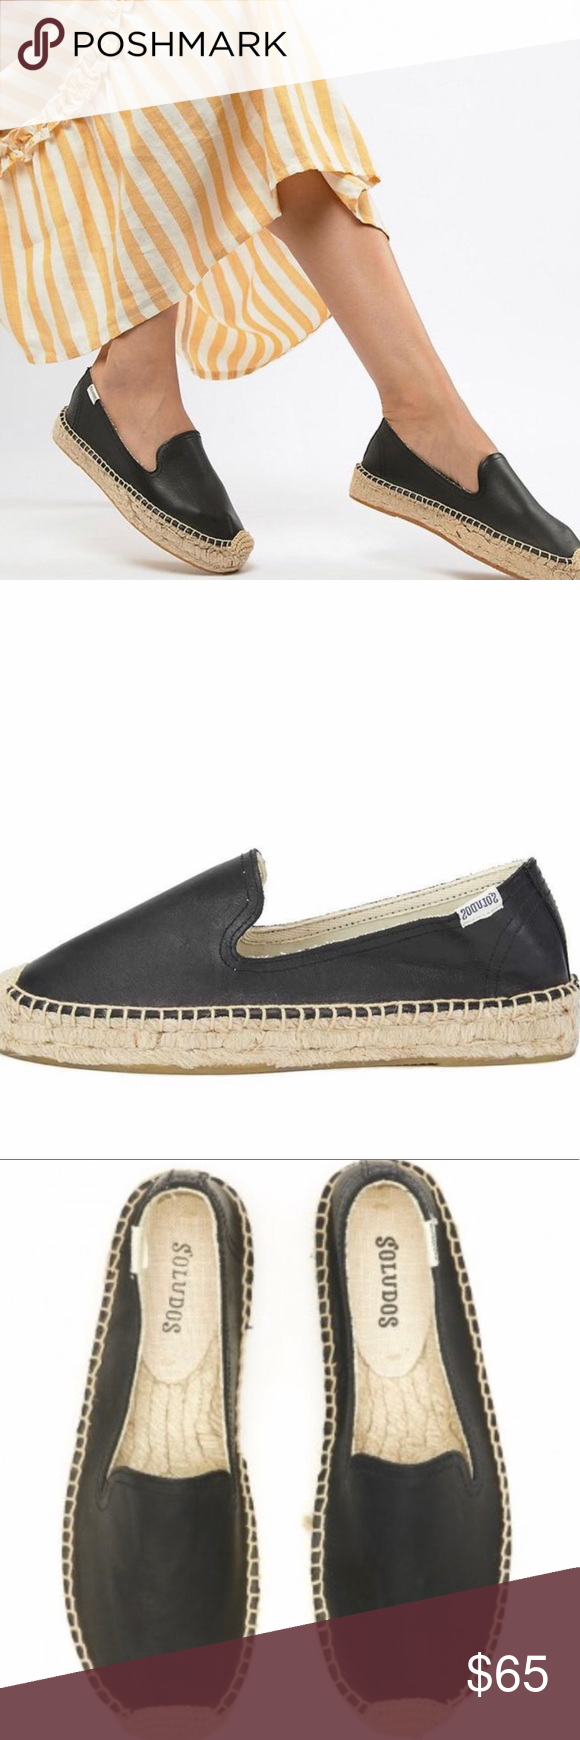 3108b9dce EUC Soludos Black Leather Espadrilles Size 7 Excellent Used Condition  Soludos Black Leather Espadrilles Size 7 Excellent shape, shows minimal  signs of wear ...